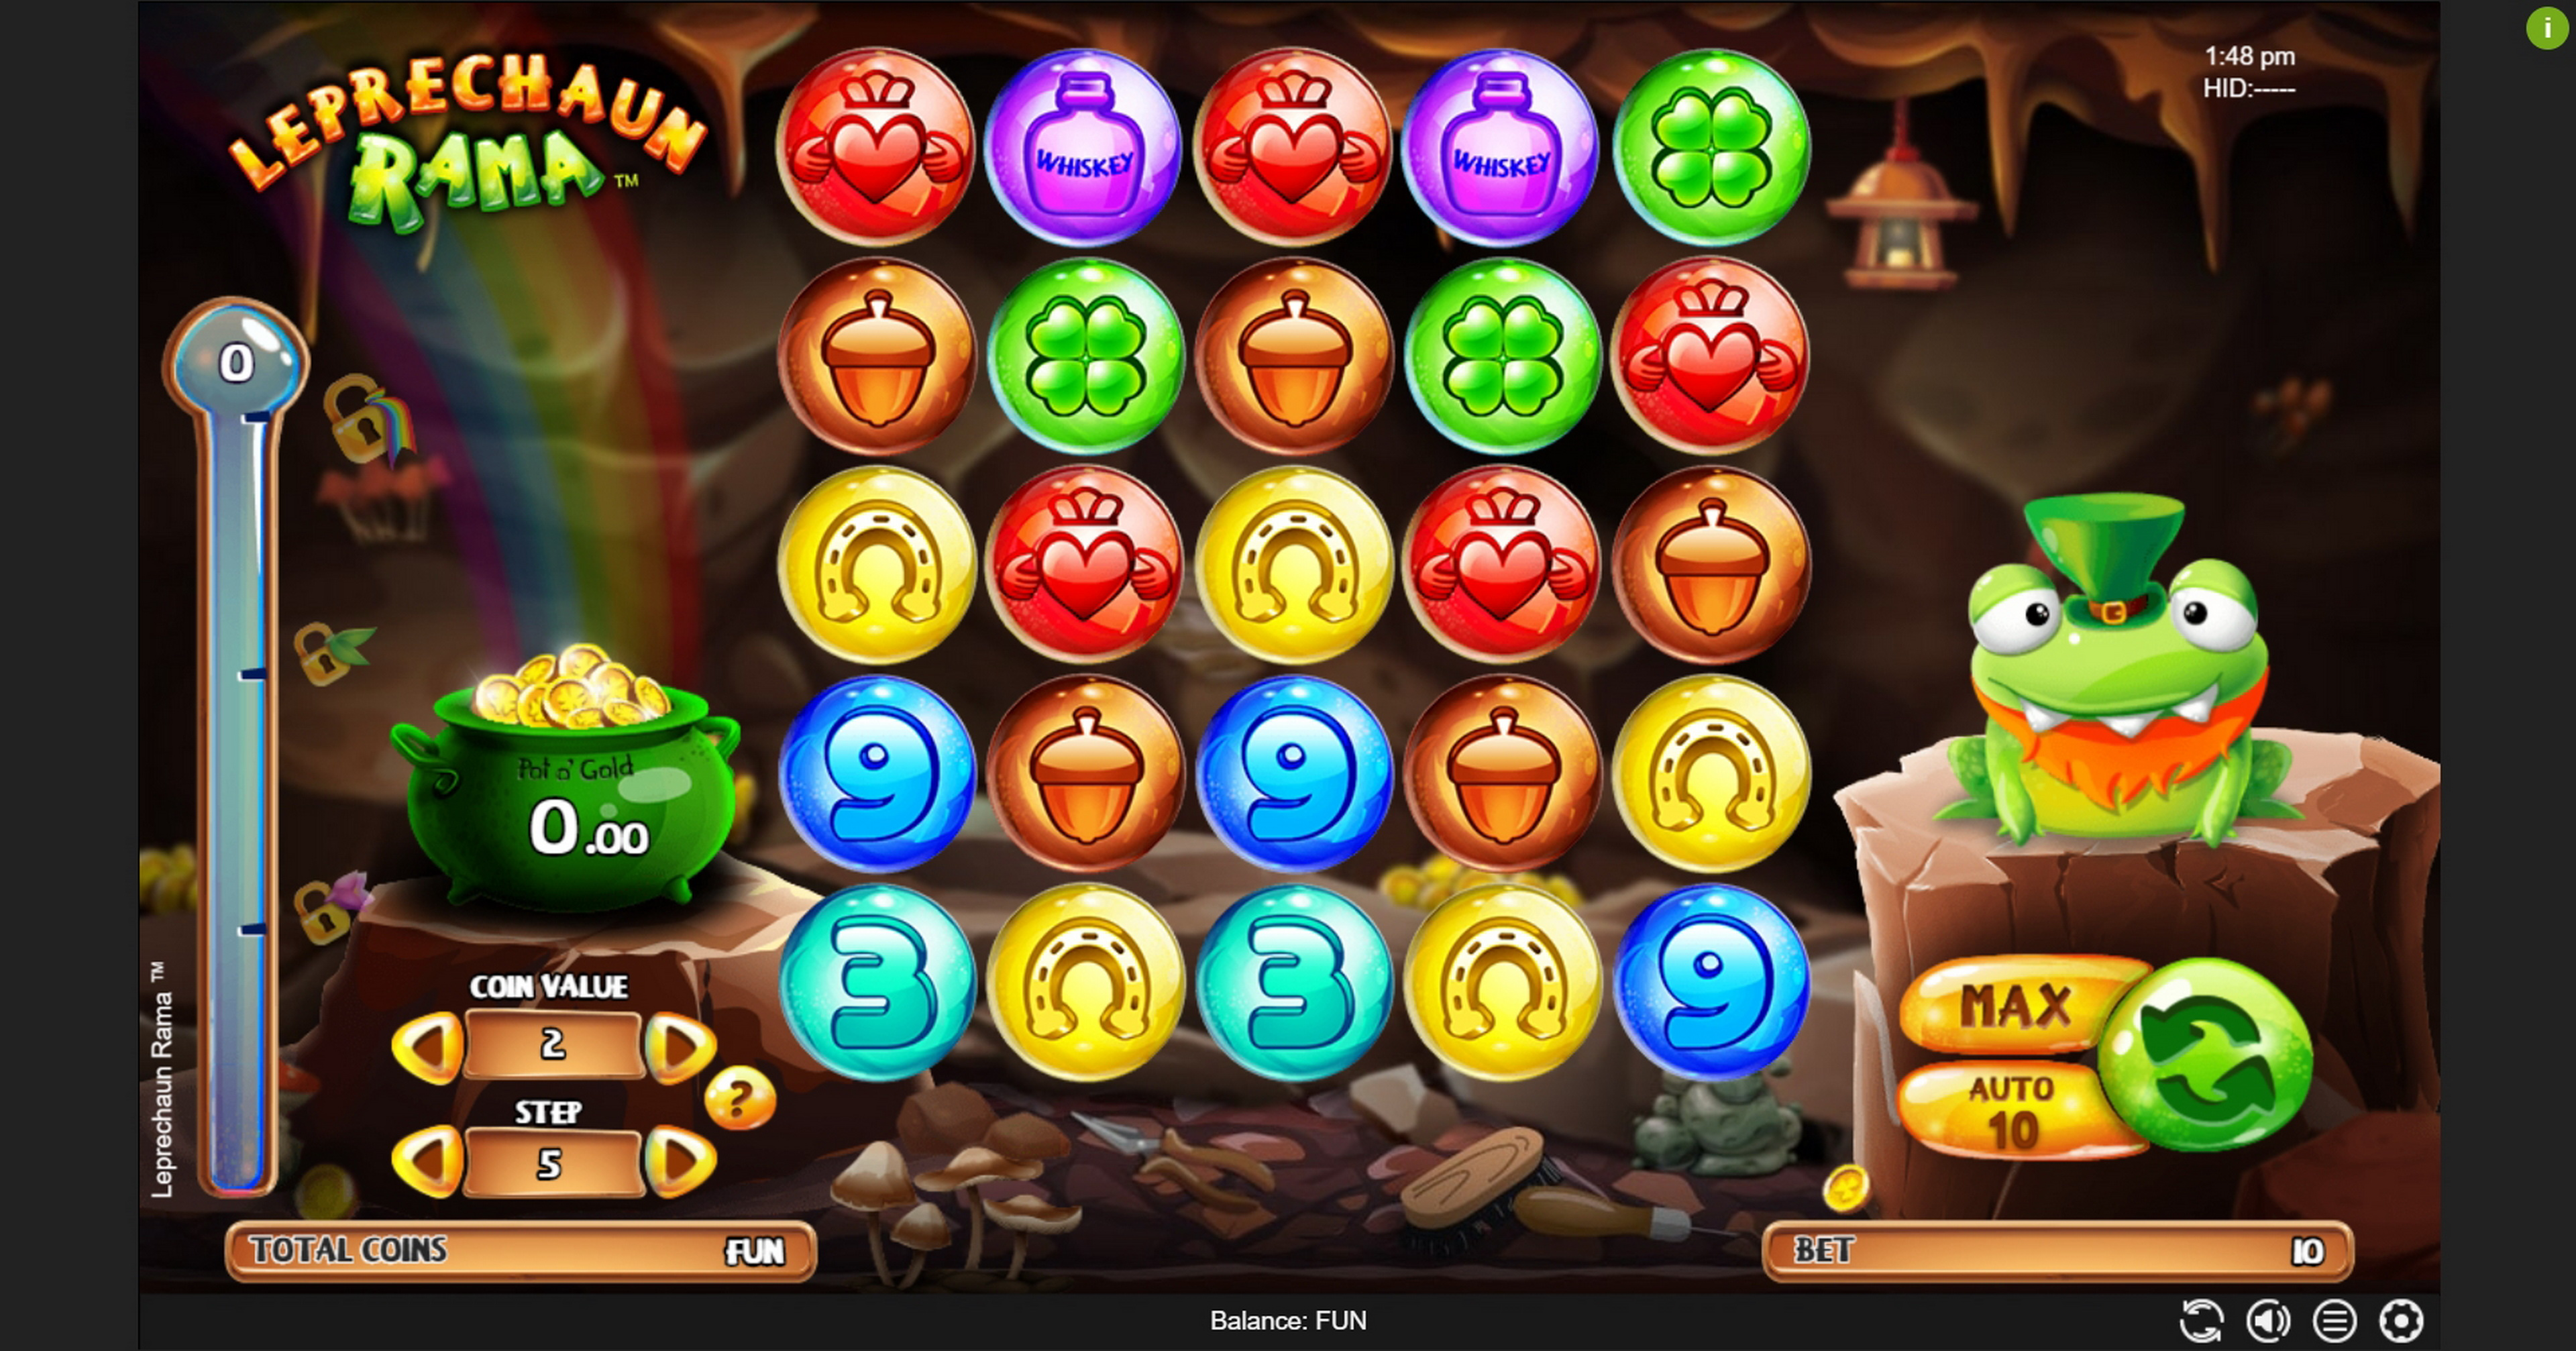 Reels in Leprechaun Rama Slot Game by Espresso Games